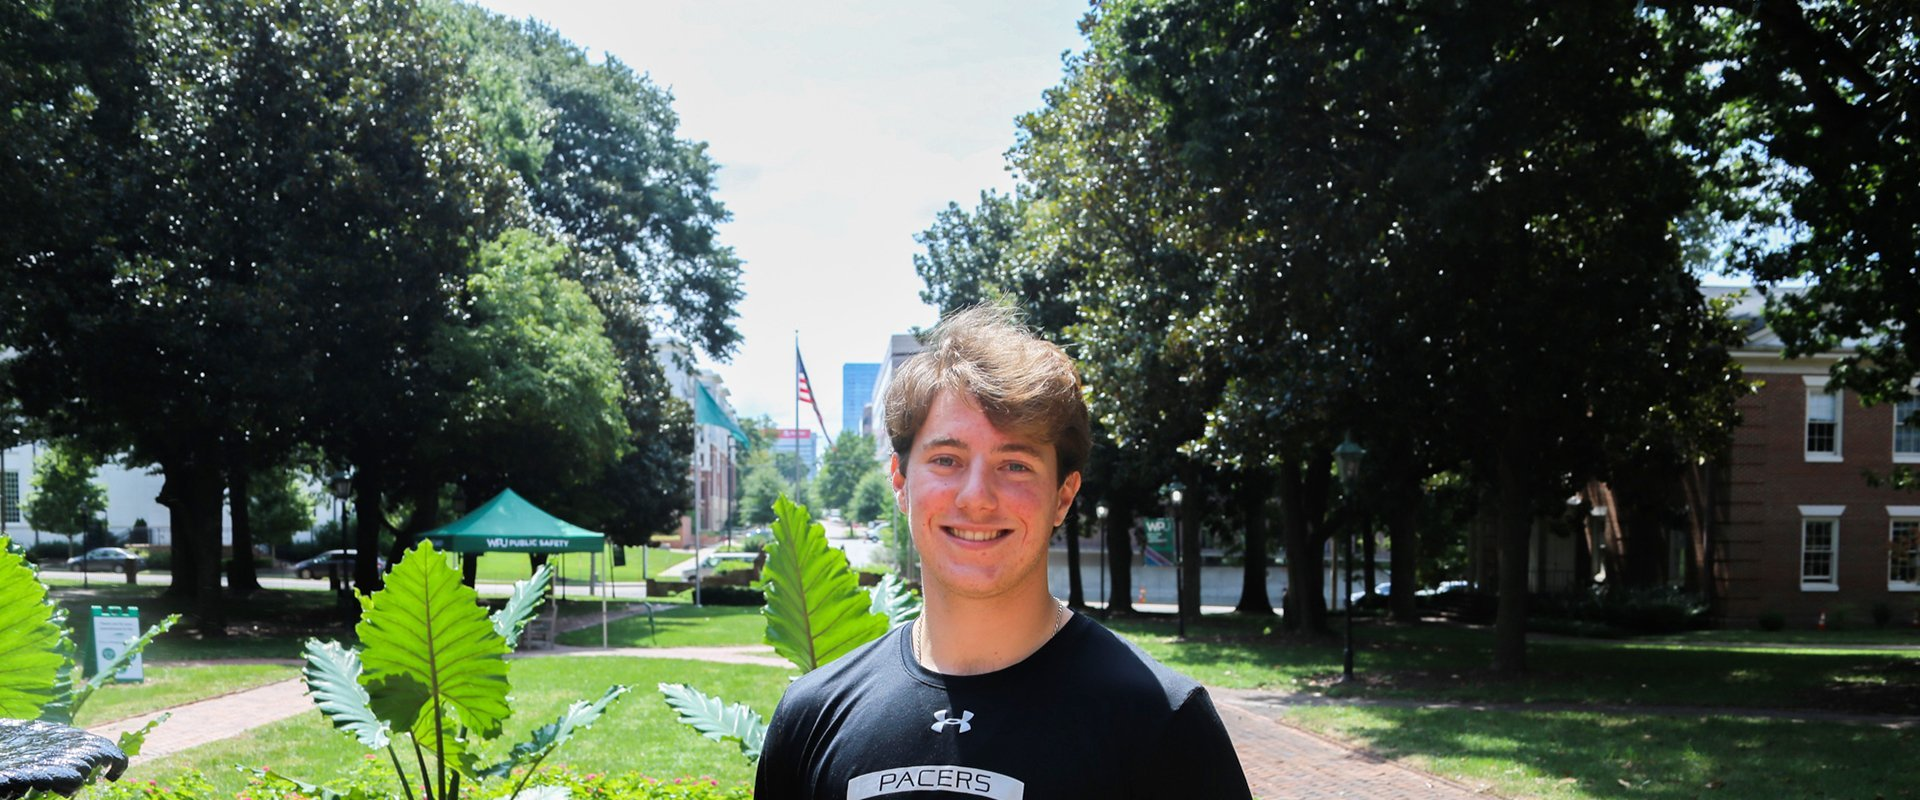 Nick Falso is an Environmental Science student at William Peace University - Is it Too Late to go Back to School at 30?